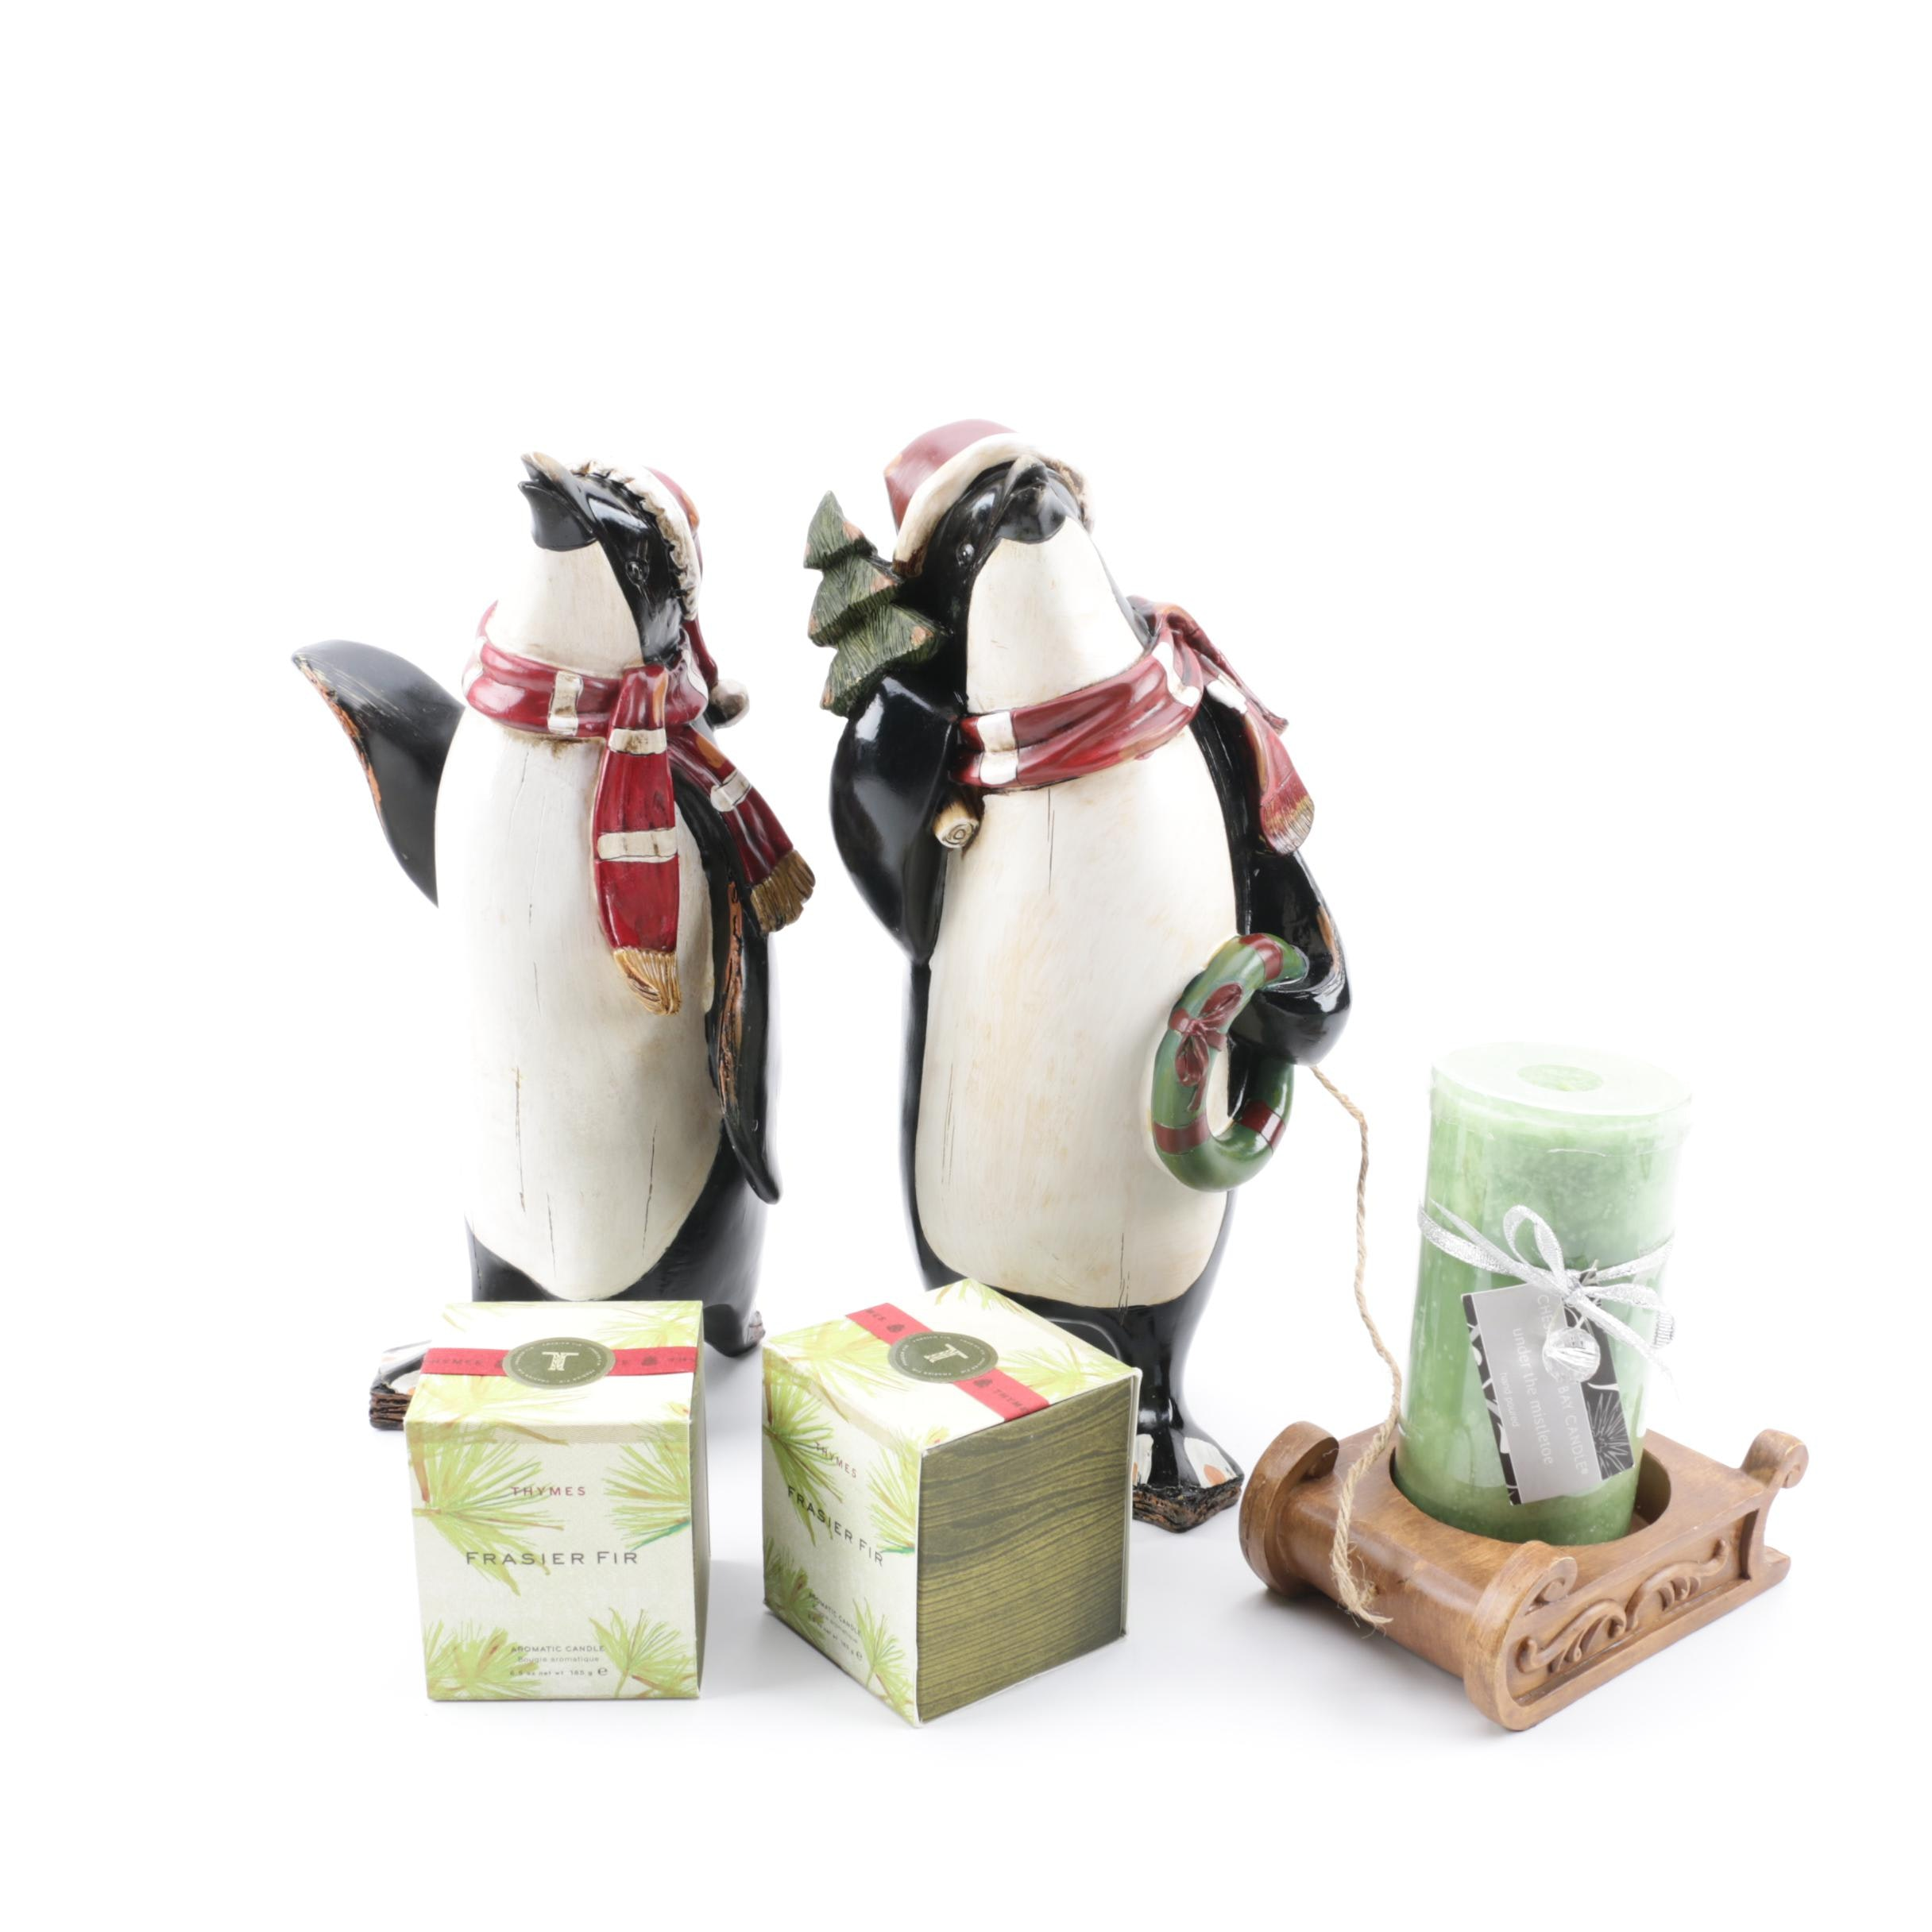 Penguin Figurative Candle Holder with Thymes and Chesapeake Bay Candles